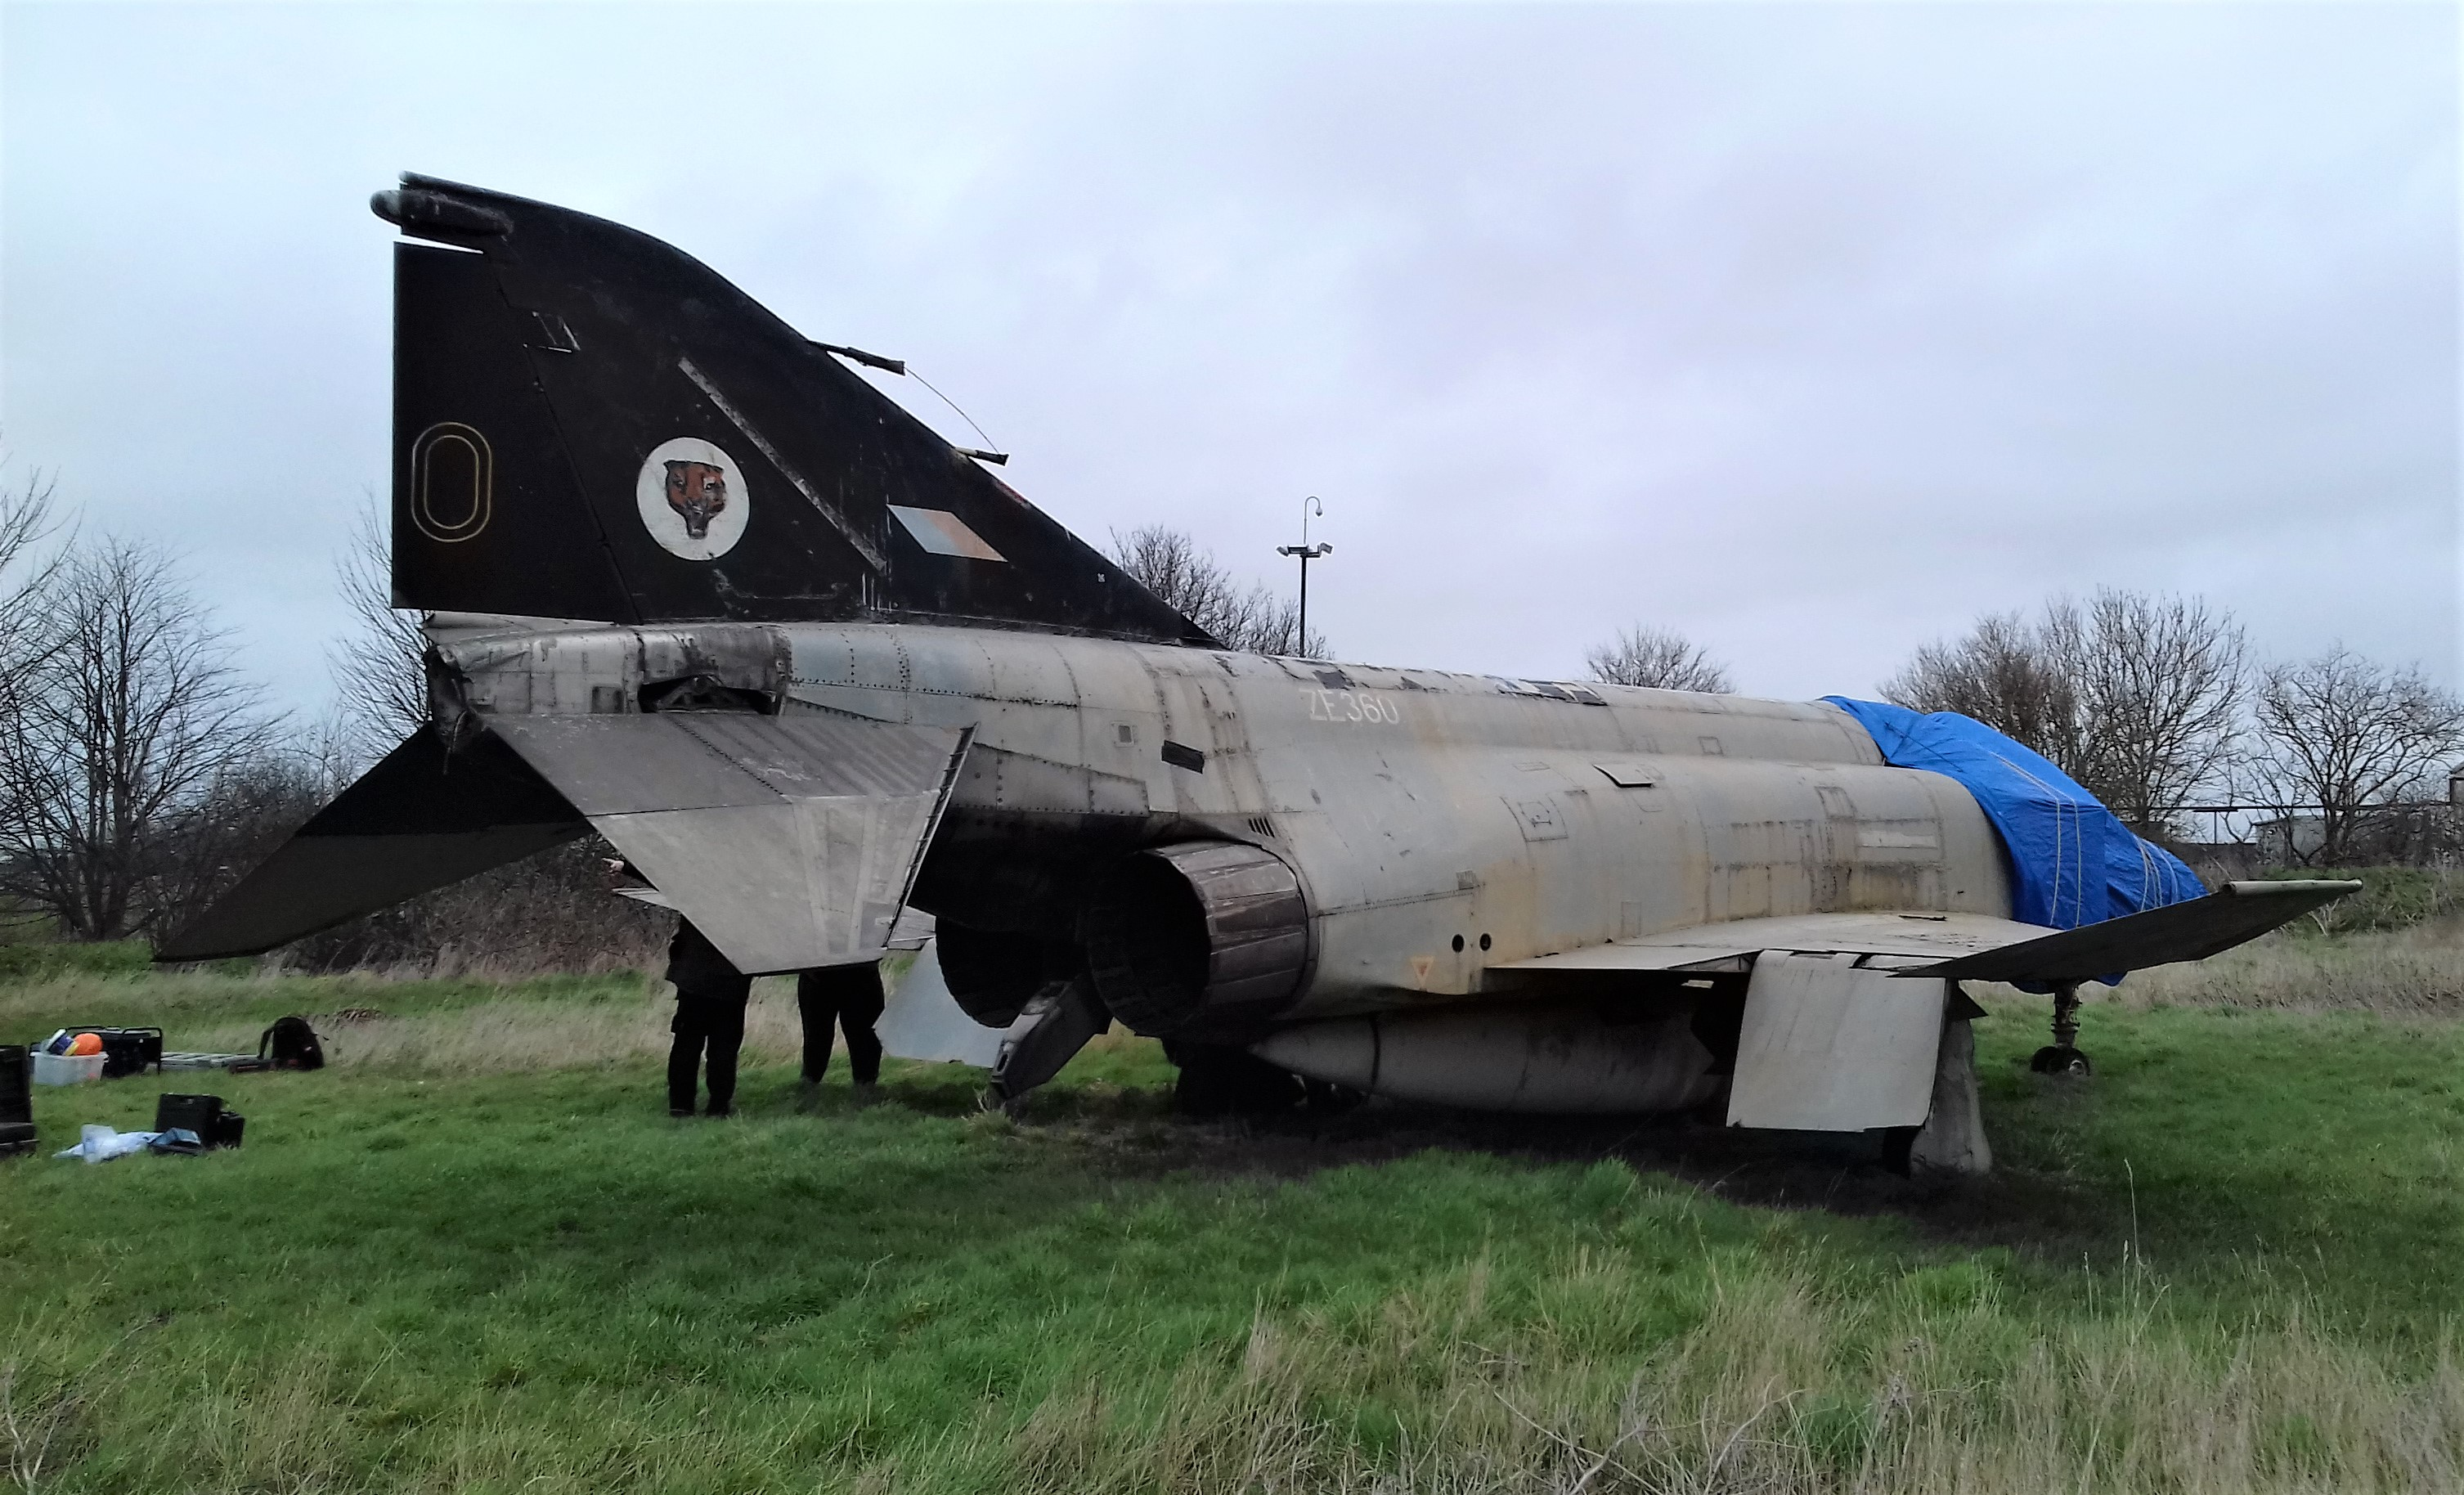 Greenwood Military Aviation Museum's Lancaster with her freshly restored nose about to rejoin the fuselage in Greenwood, Nova Scotia. (photo via GMAM)